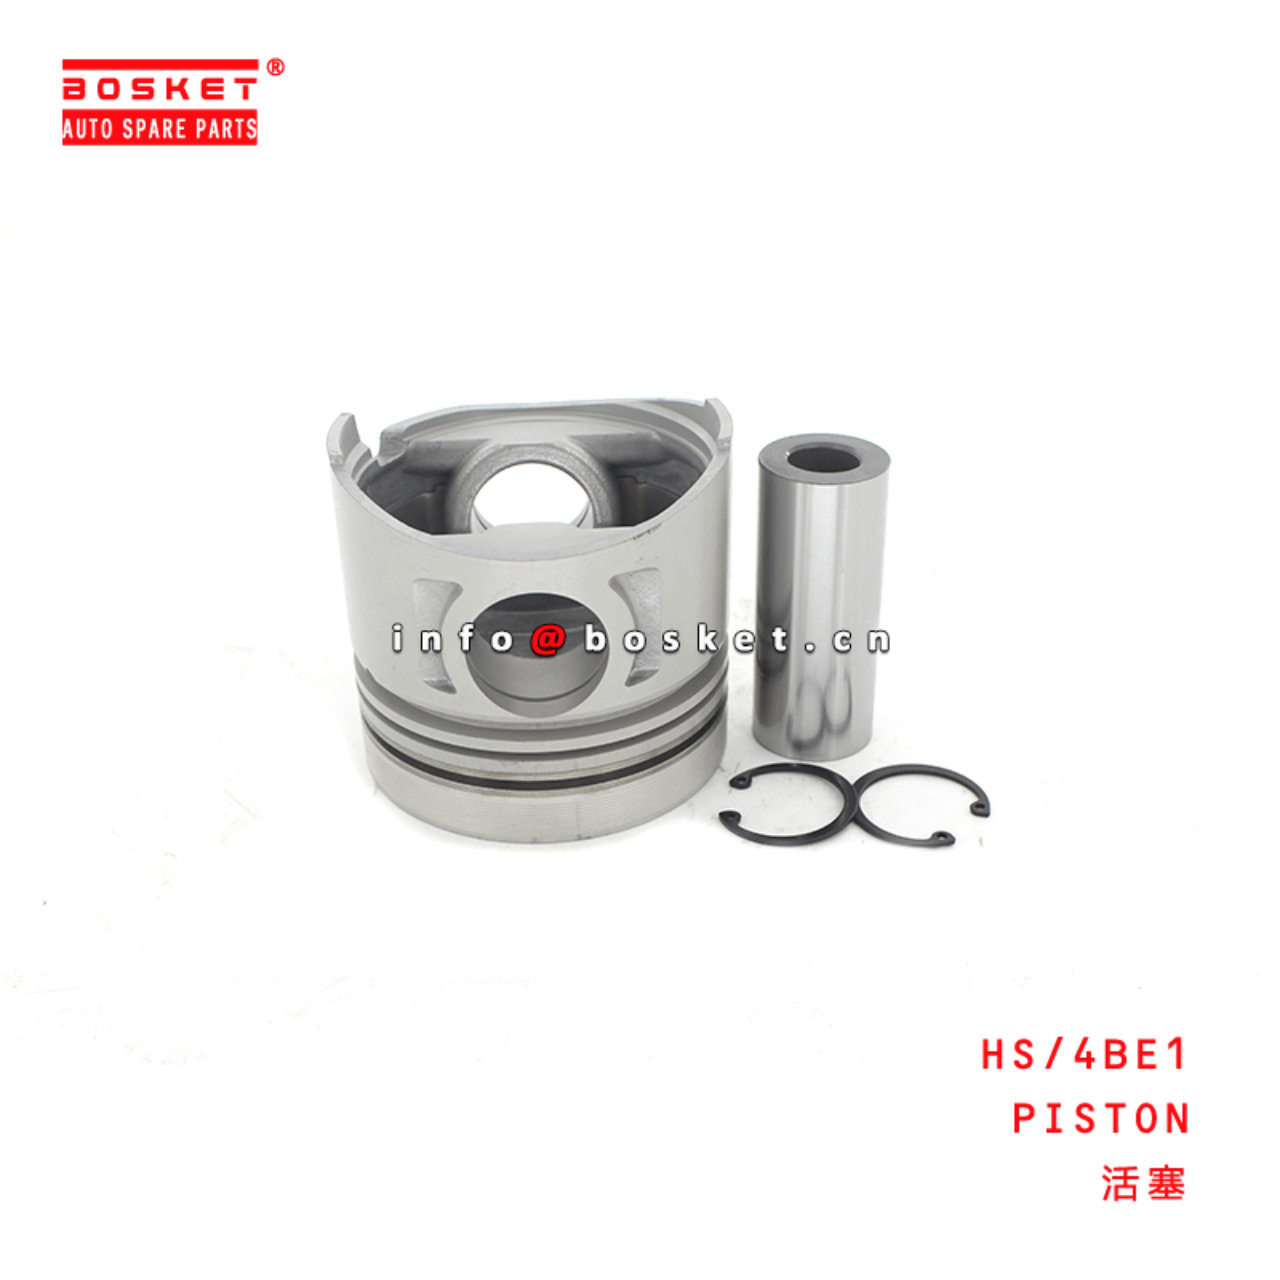 HS/4BE1 Piston Suitable for ISUZU 4BE1